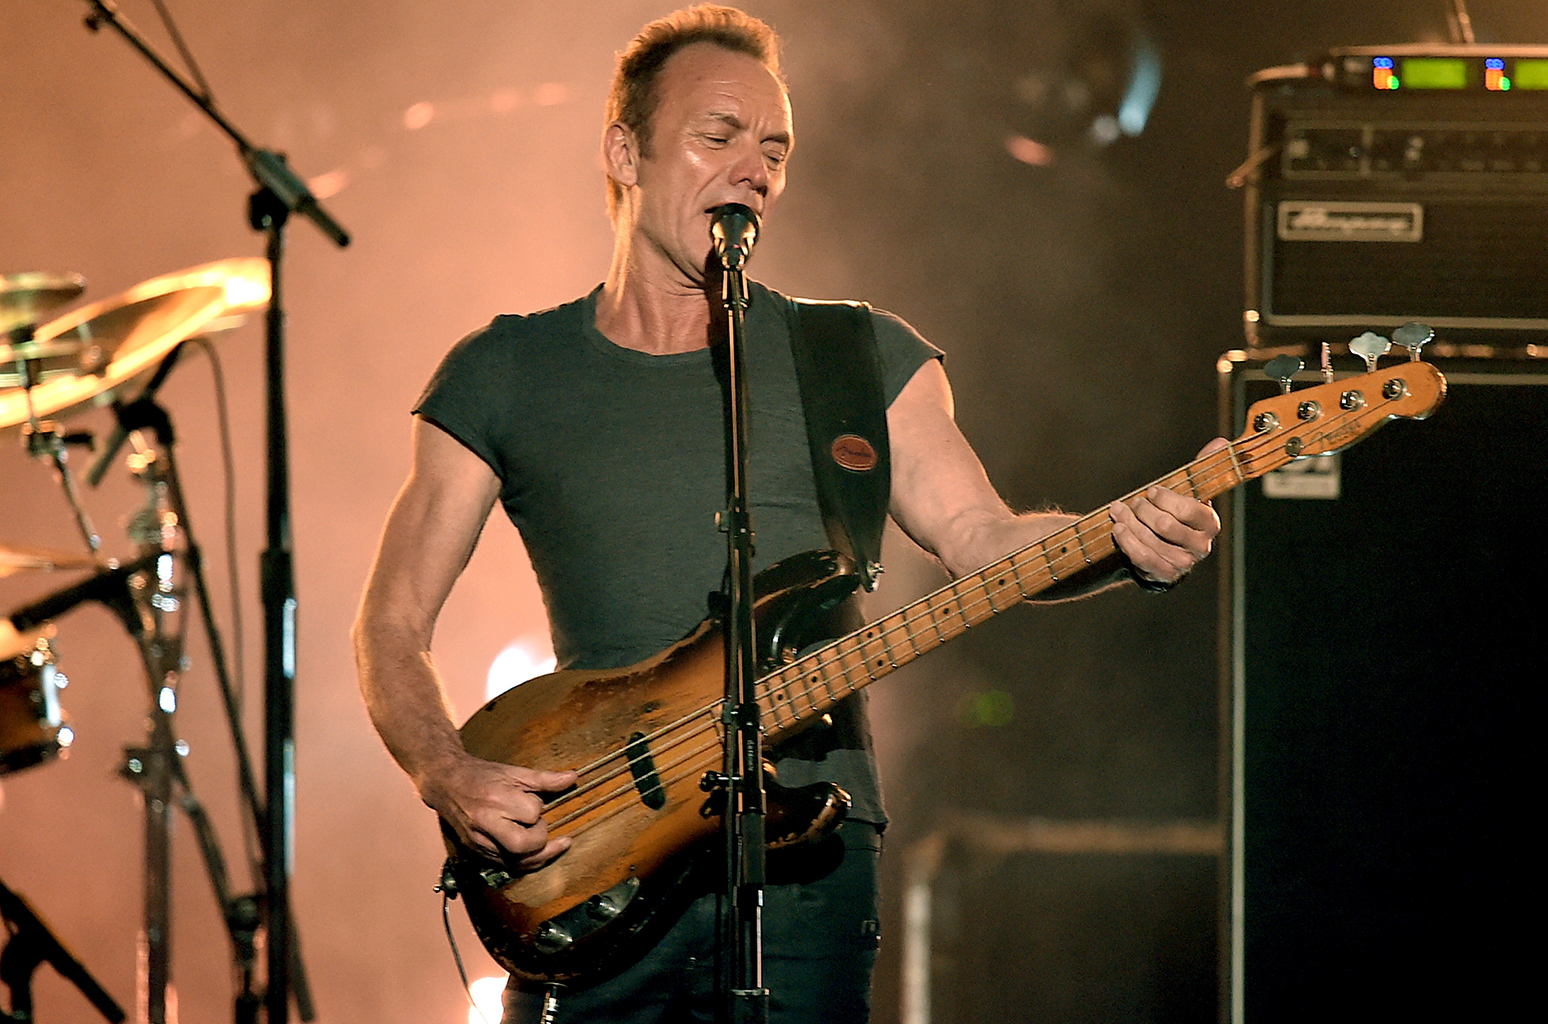 LOS ANGELES, CA - NOVEMBER 20: Musician Sting performs onstage during the 2016 American Music Awards at Microsoft Theater on November 20, 2016 in Los Angeles, California. (Photo by Kevin Winter/Getty Images)